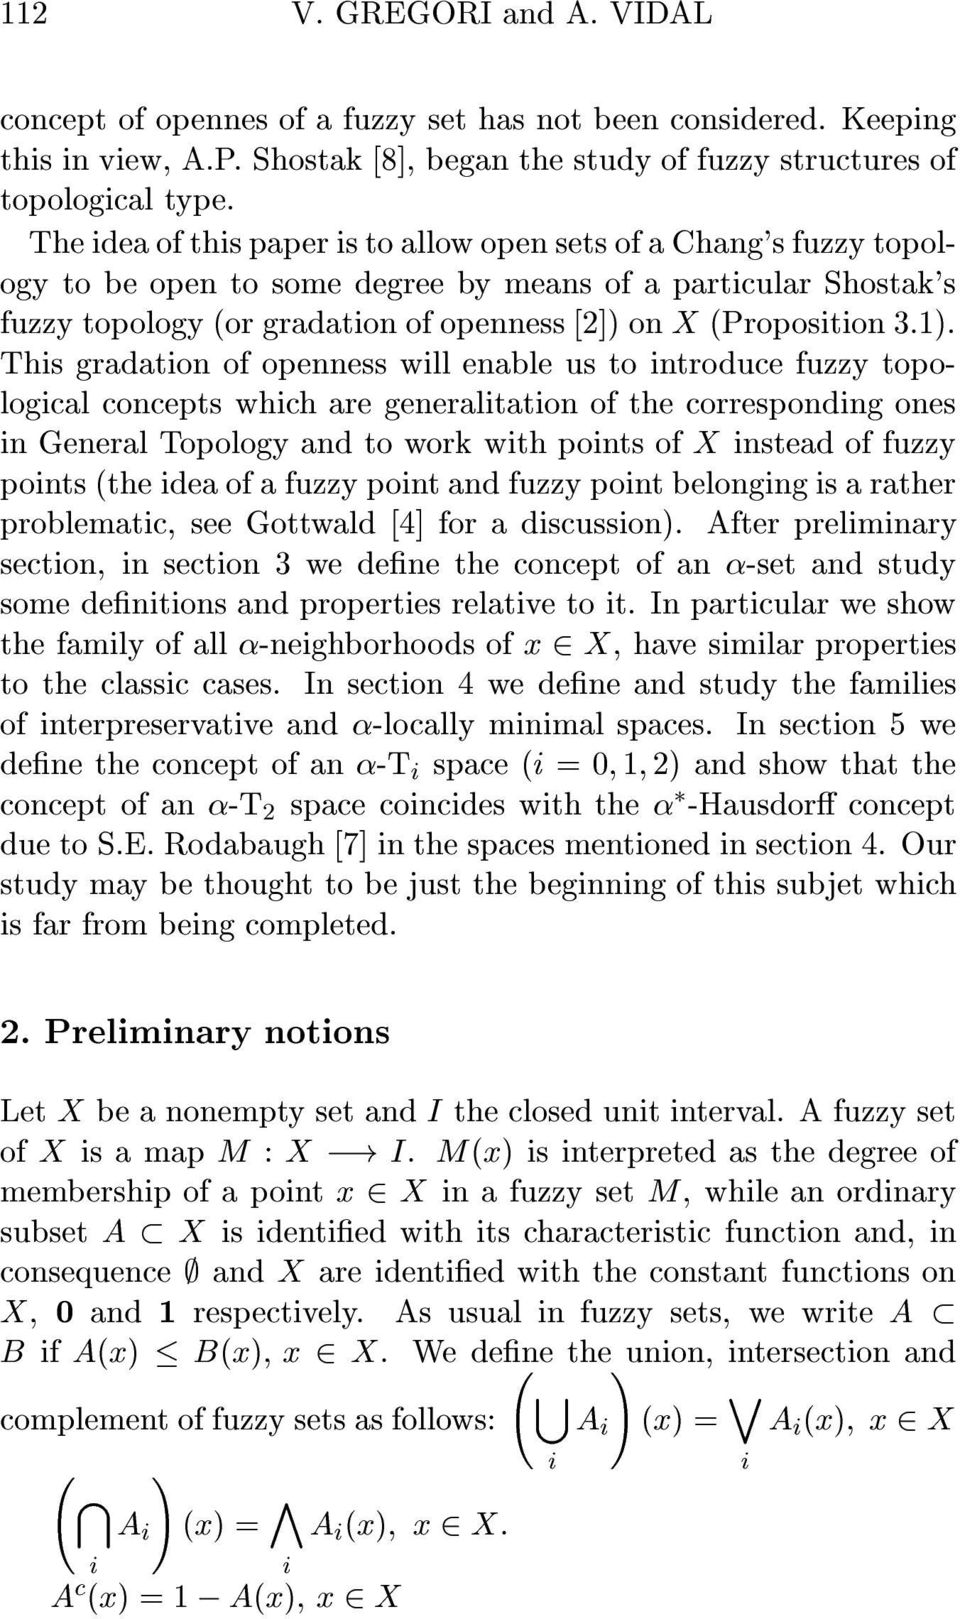 1). This gradation of openness will enable us to introduce fuzzy topological concepts which are generalitation of the corresponding ones in General Topology and to work with points of X instead of